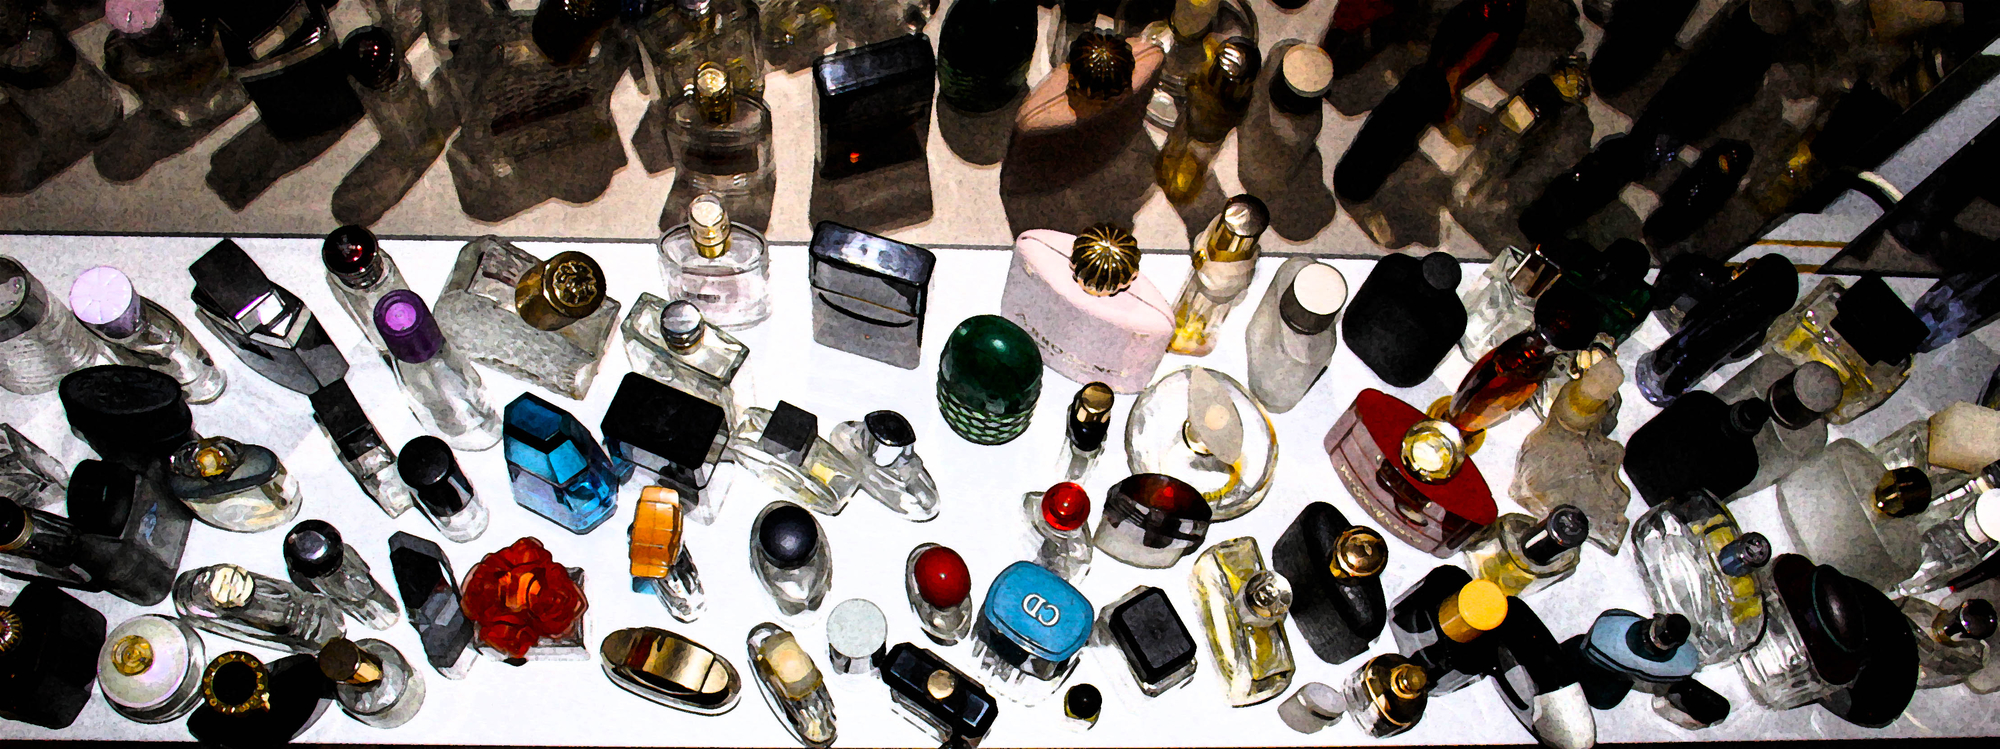 Perfumes collection di ringhio